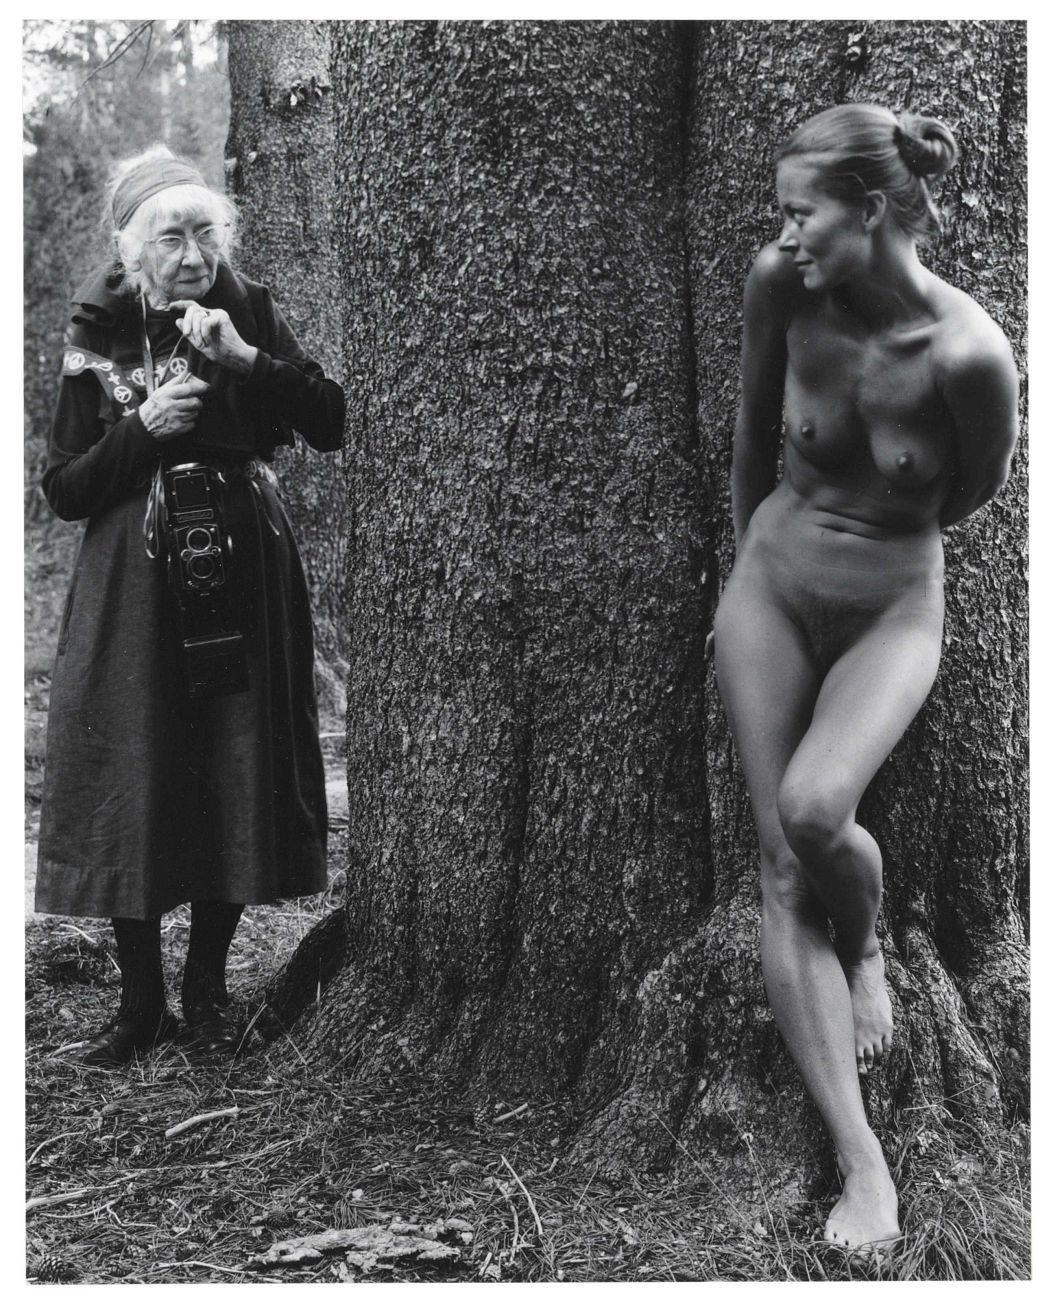 Judy Dater, Imogen and Twinka at Yosemite, 1974